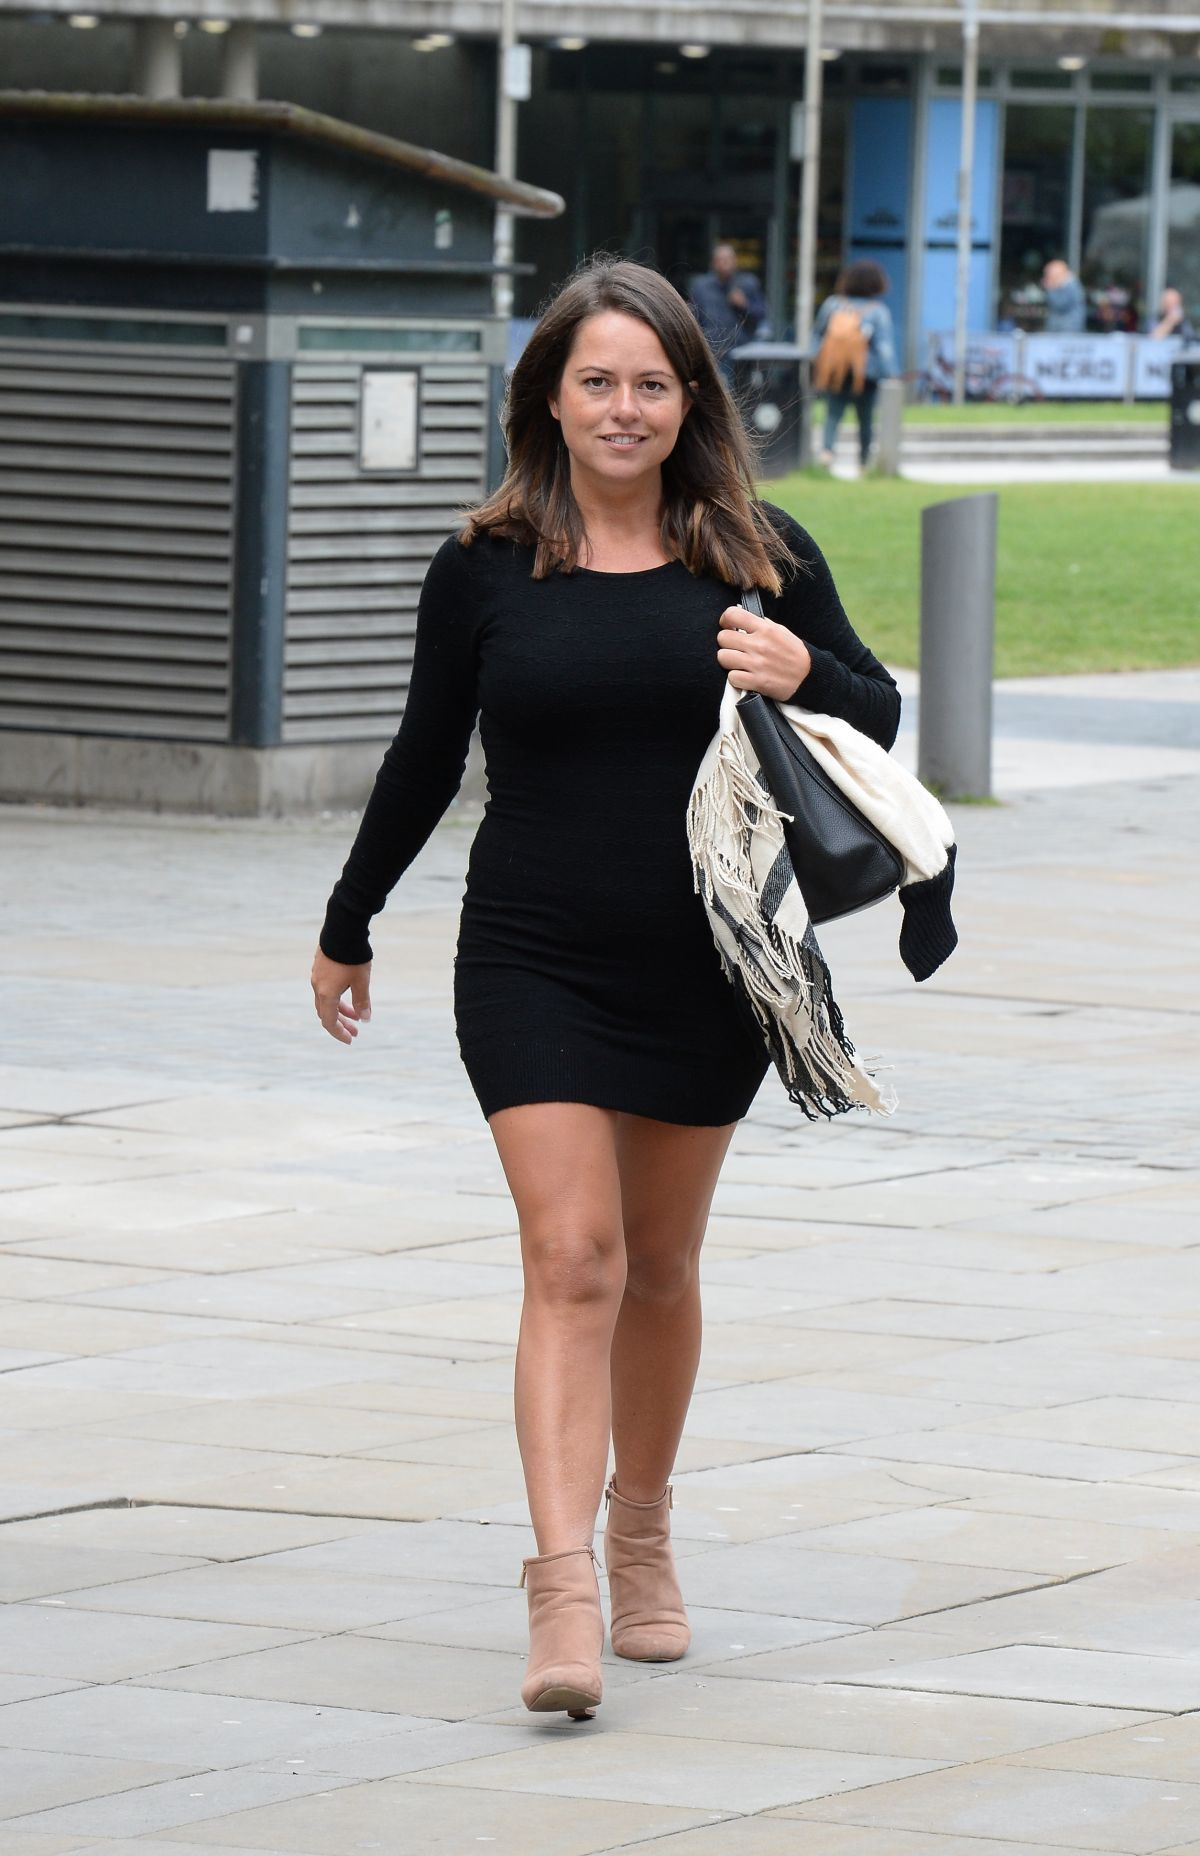 KAREN DANCZUK at Lipo Clinic in Manchester 06/18/2016